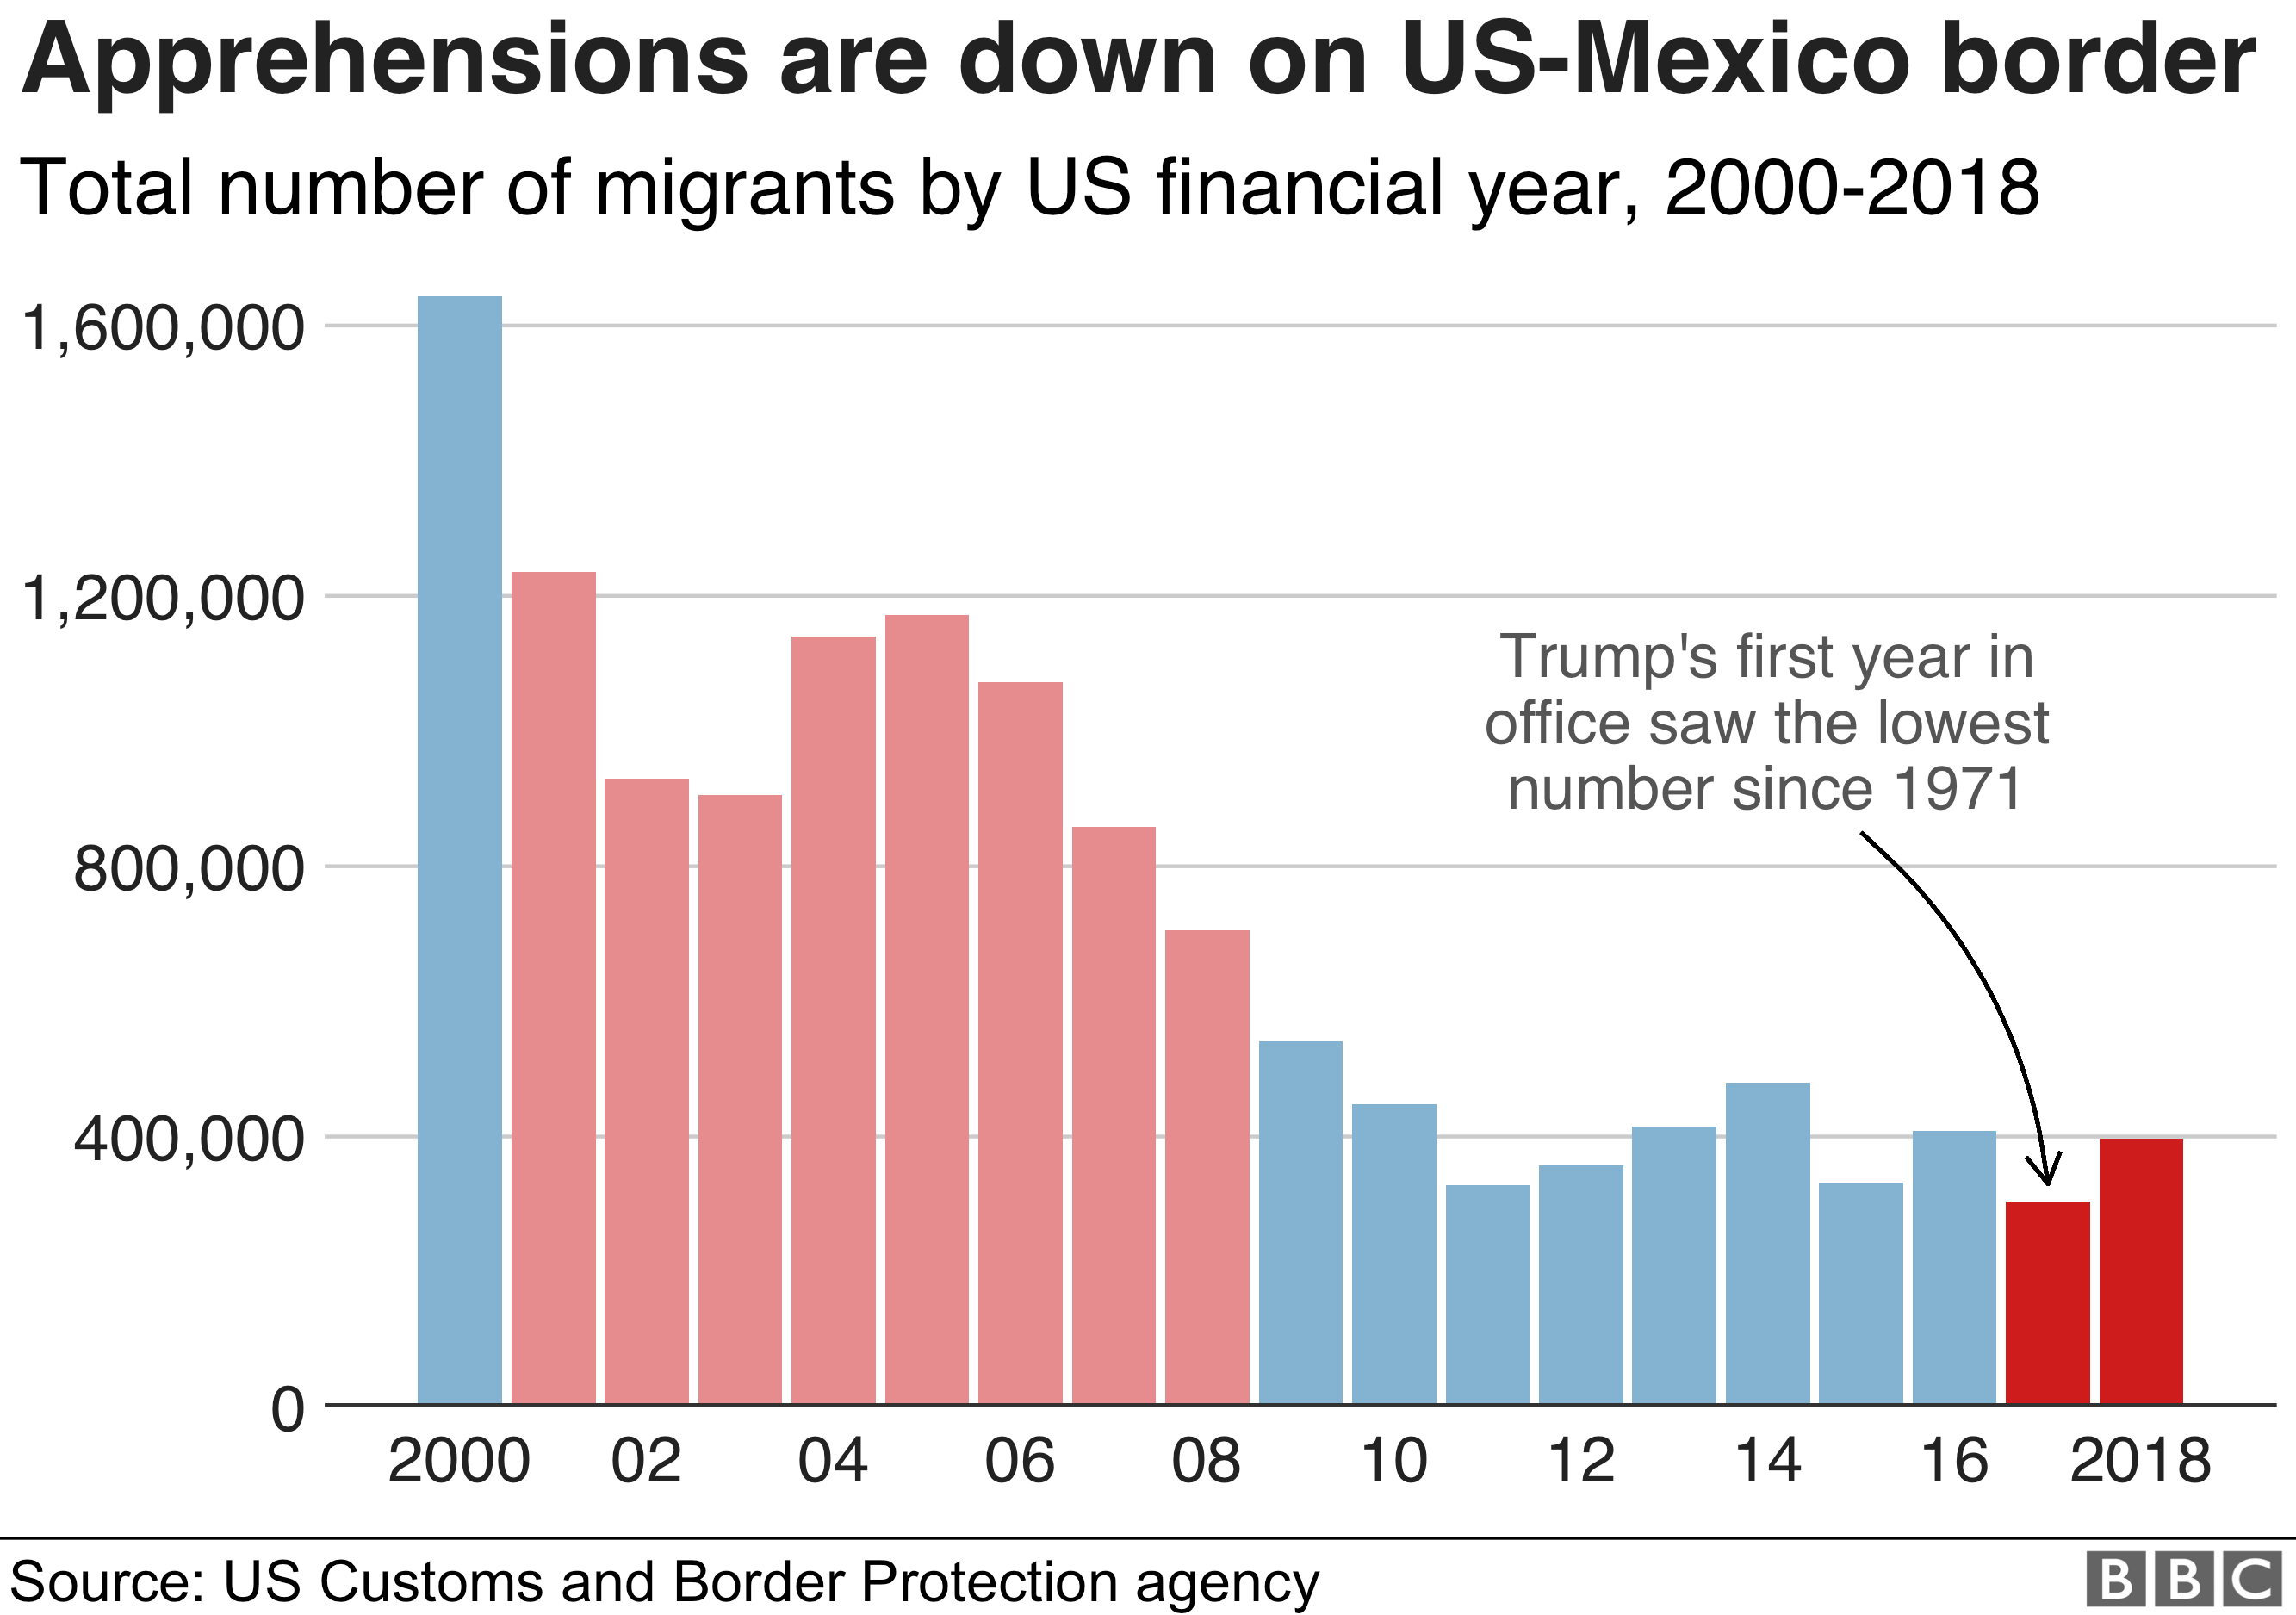 Bar chart showing apprehensions on the US-Mexico border have fallen since 2000